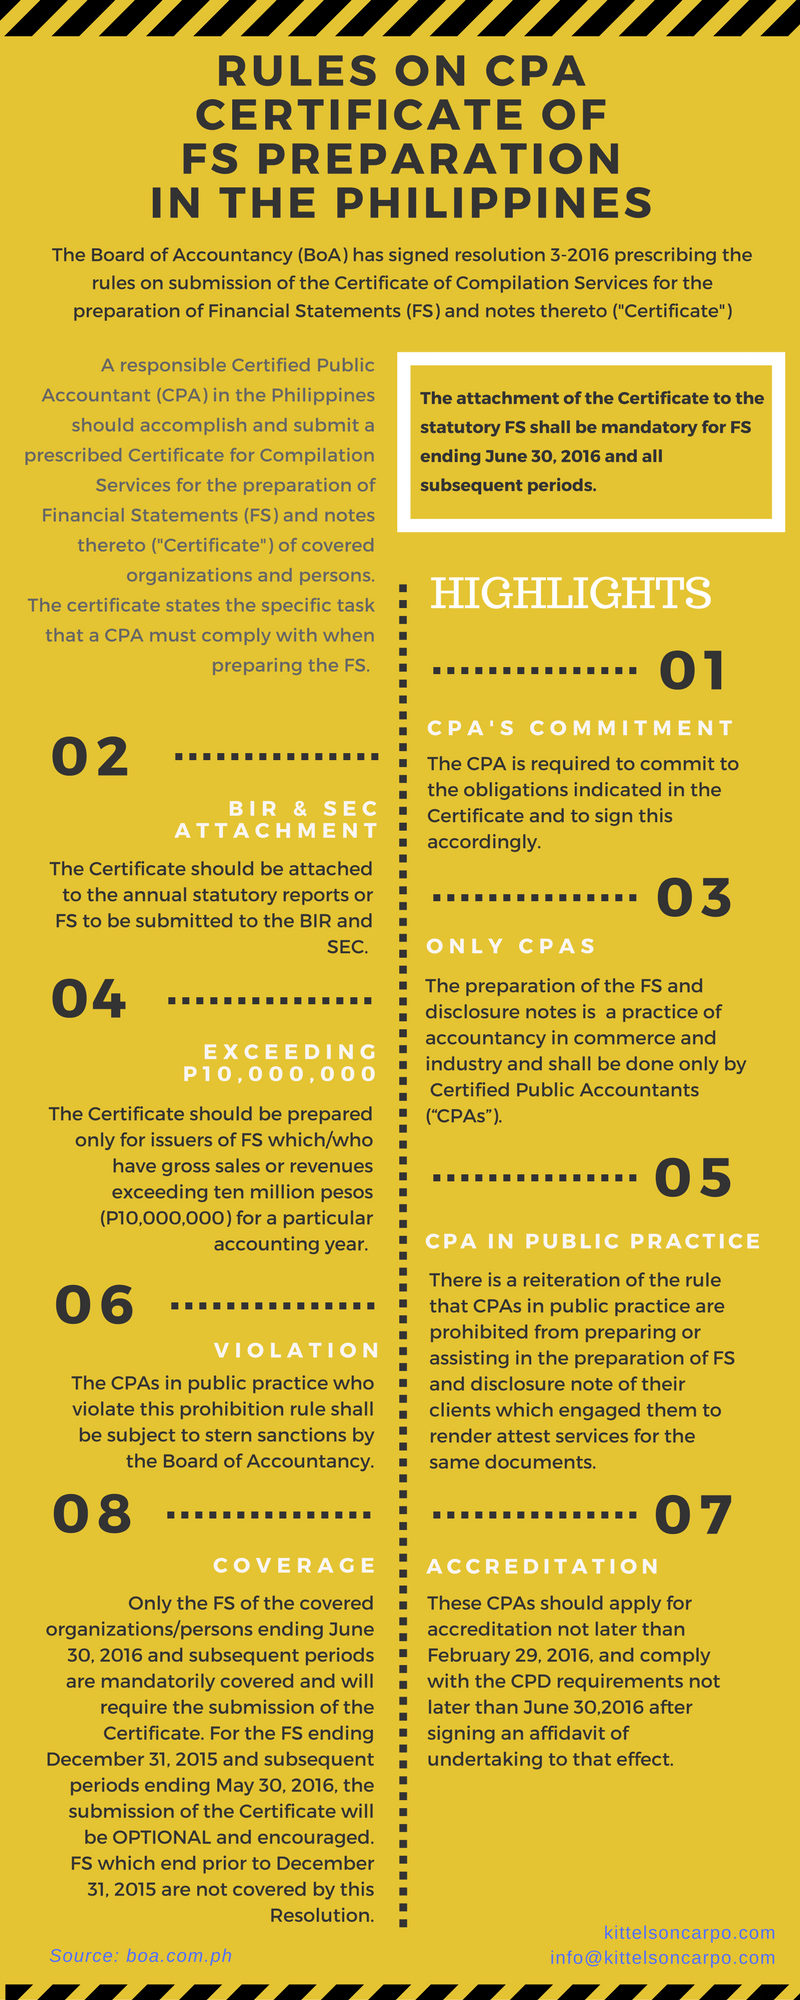 Rules on CPA Certificate of FS Preparation in the Philippines